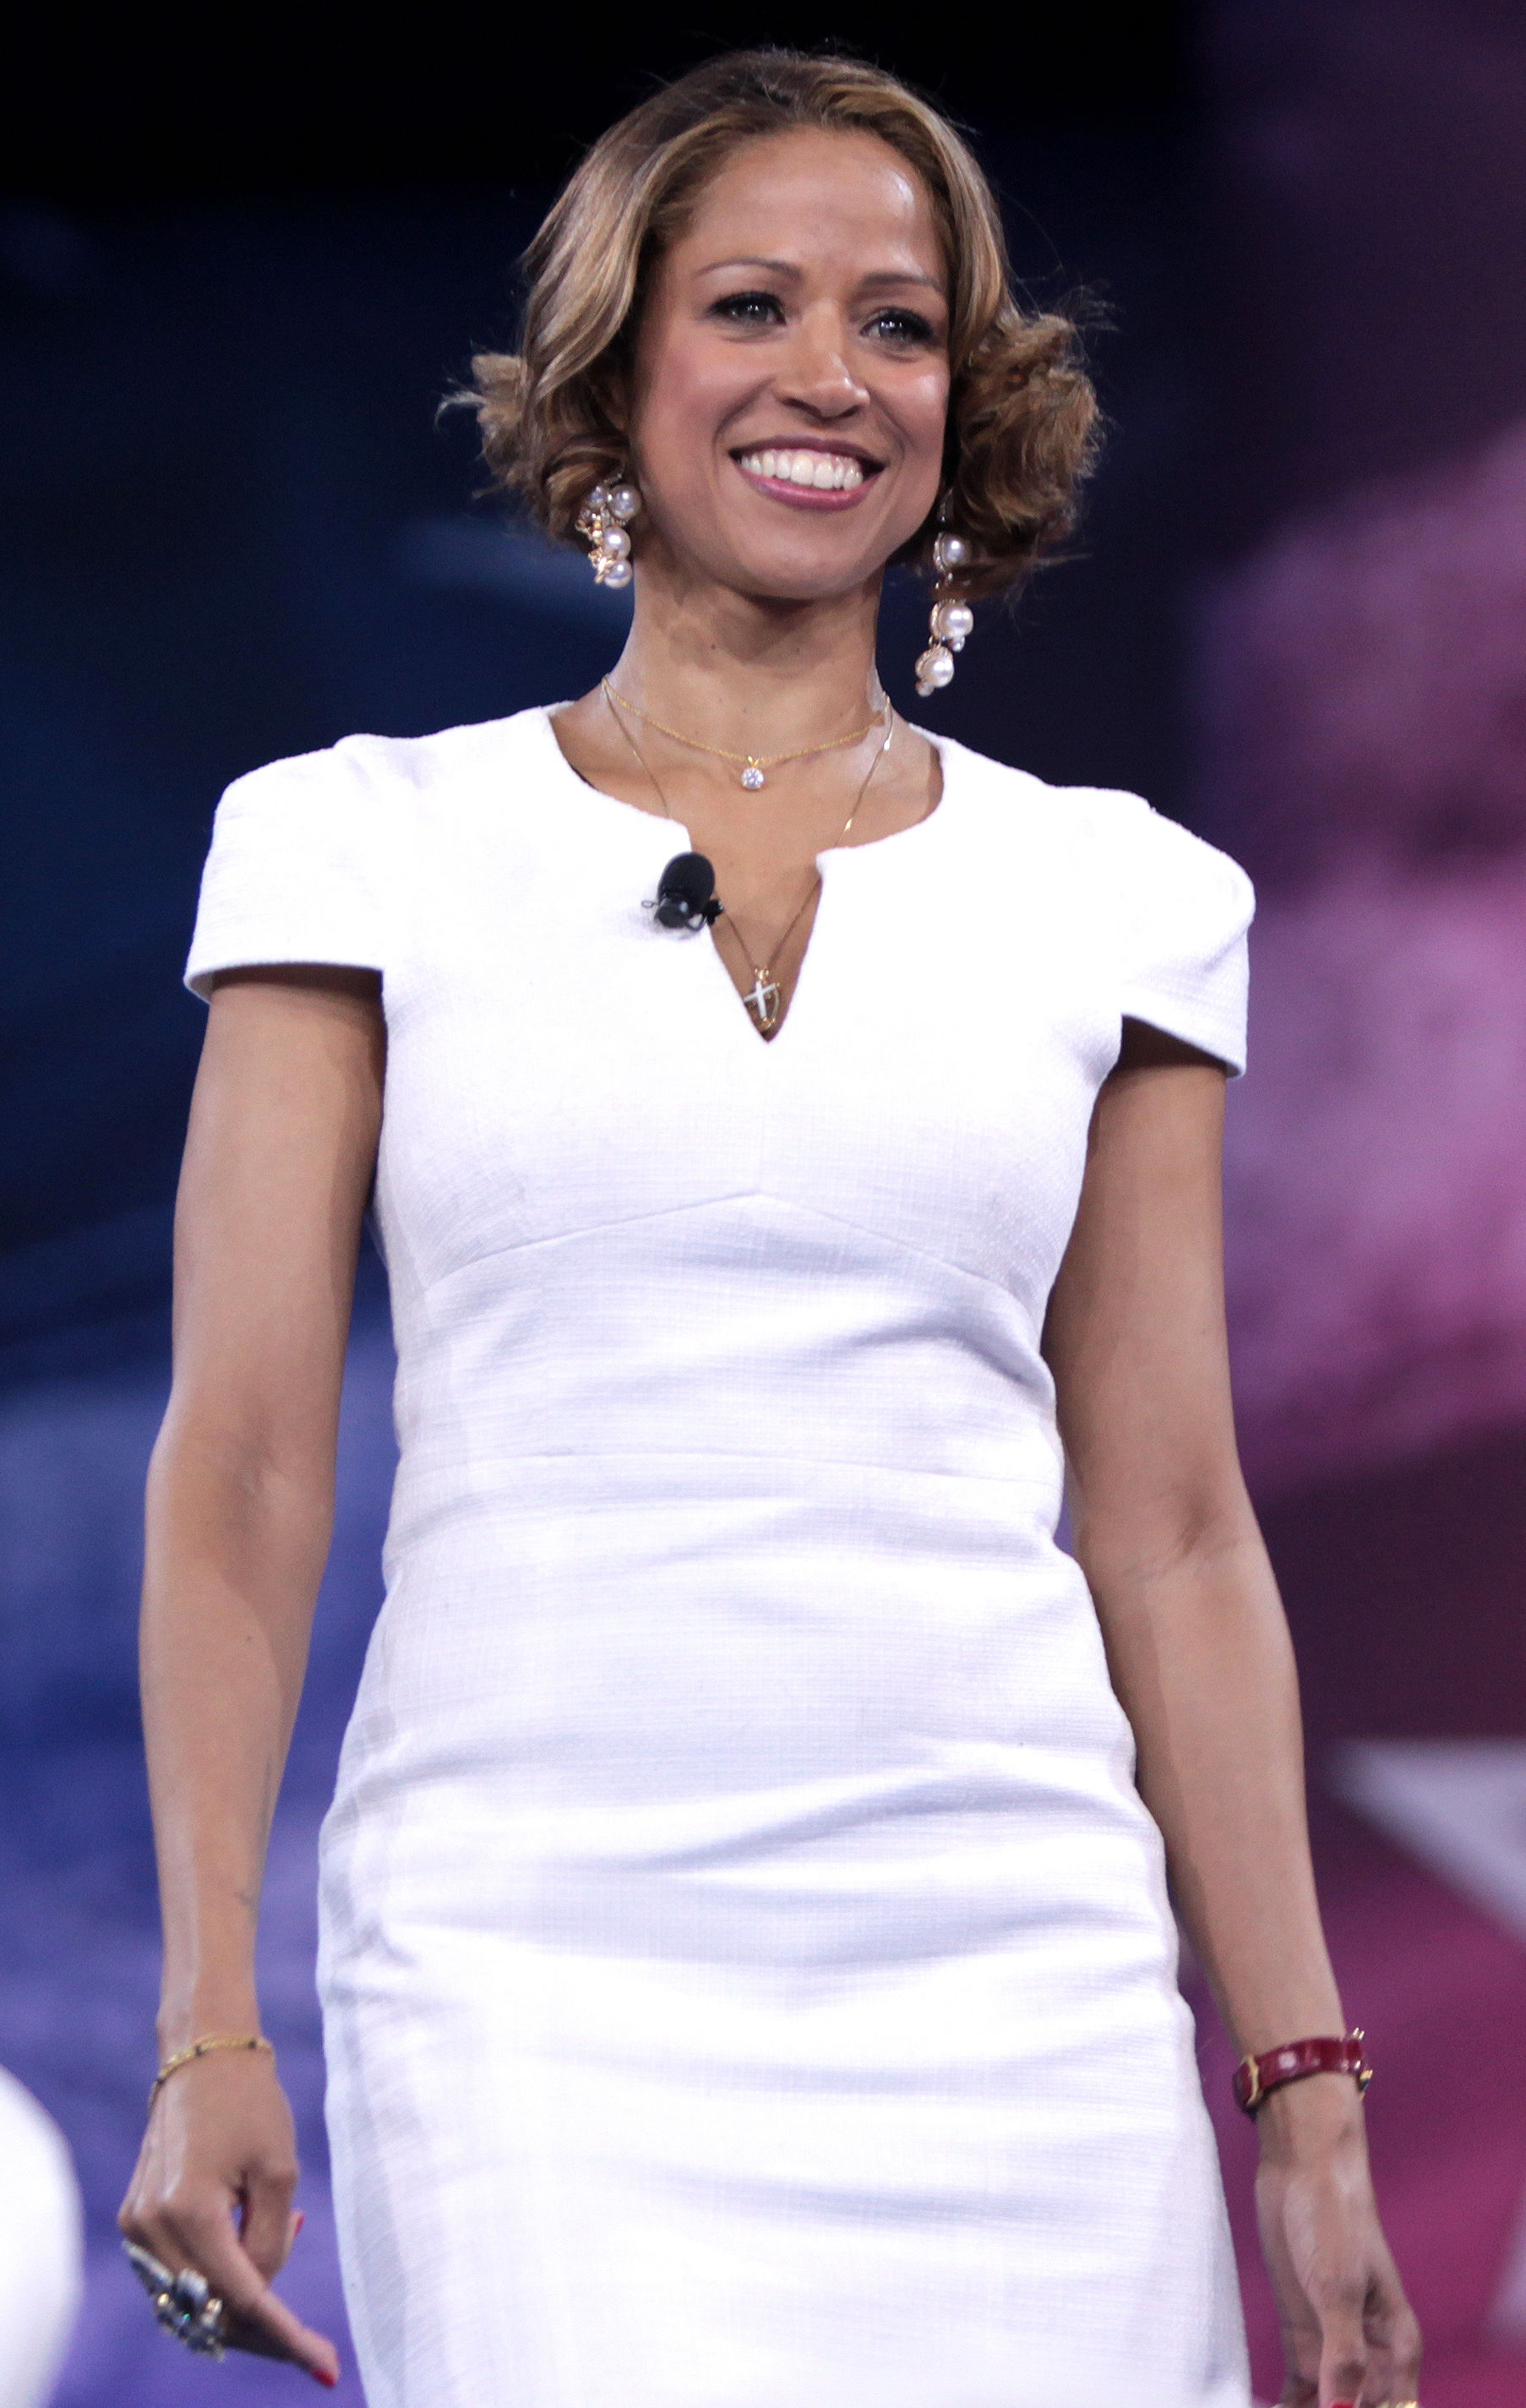 Photo of Stacey Dash: An American actress.